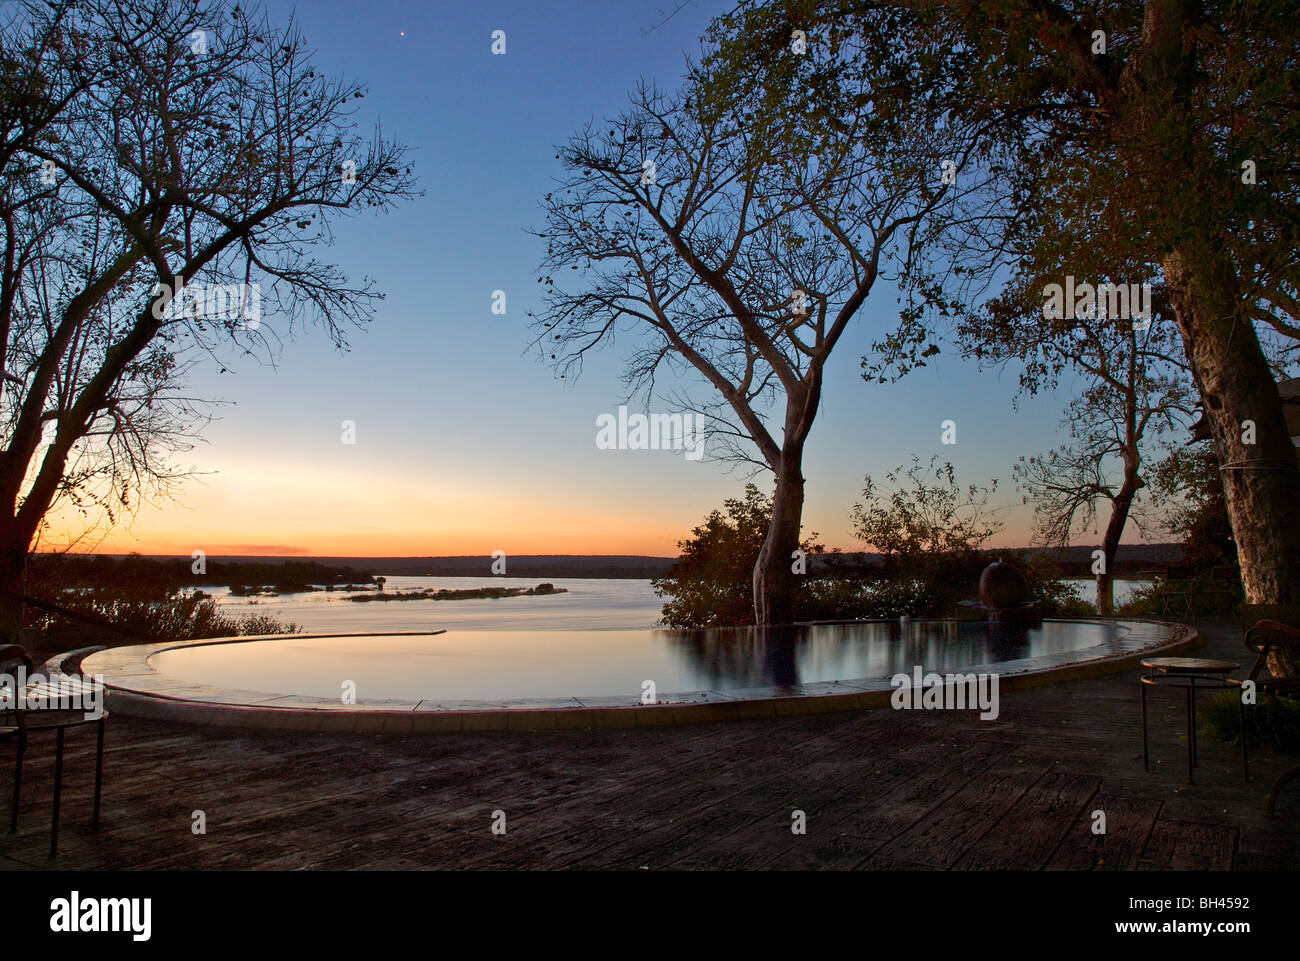 Plunge pool overlooking Lake Victoria at the River Club at sunset. - Stock Image